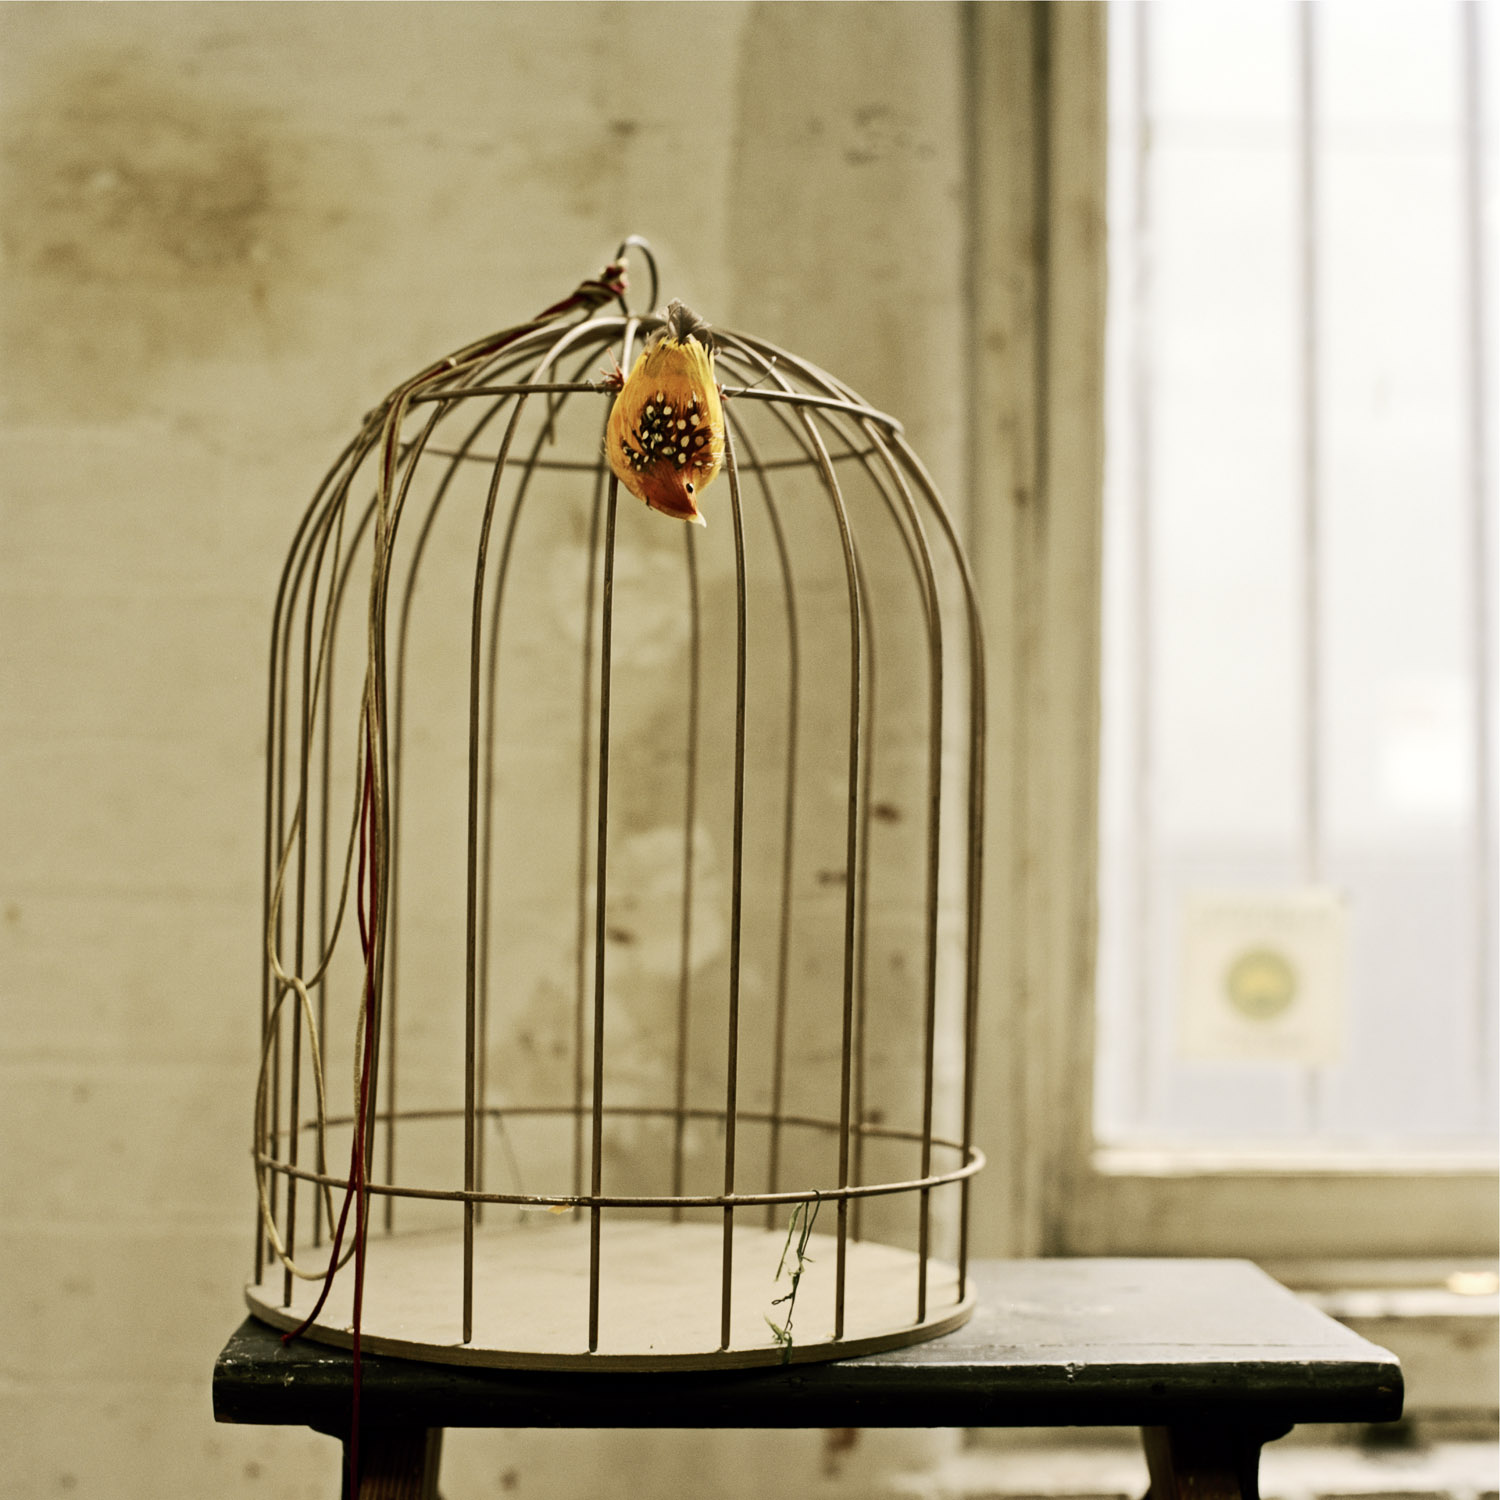 Birdcage, 2010, from the series Touchstones by Abby Storey.